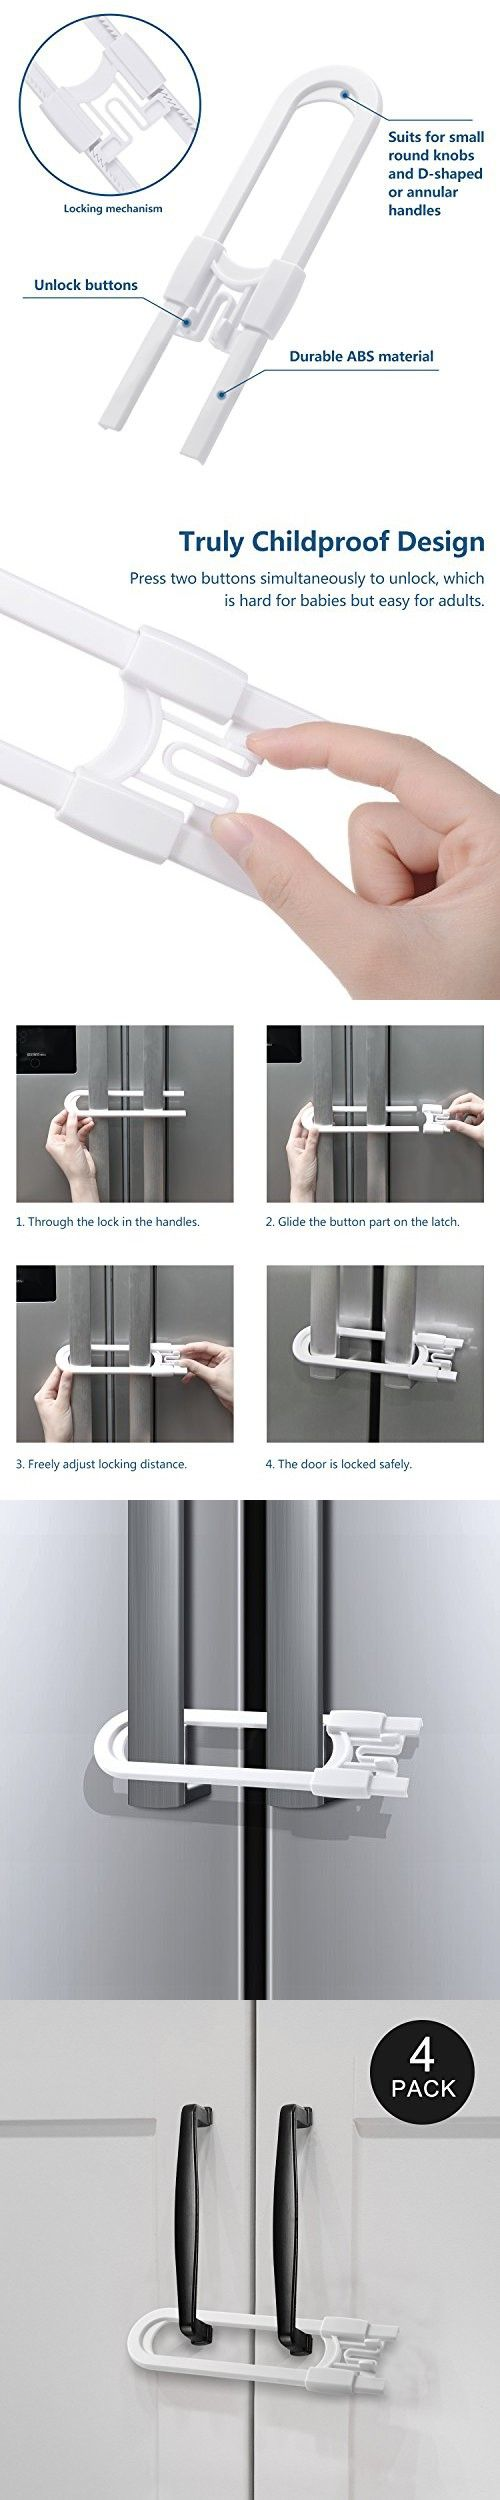 Top 25 Best Childproofing Ideas On Pinterest Child